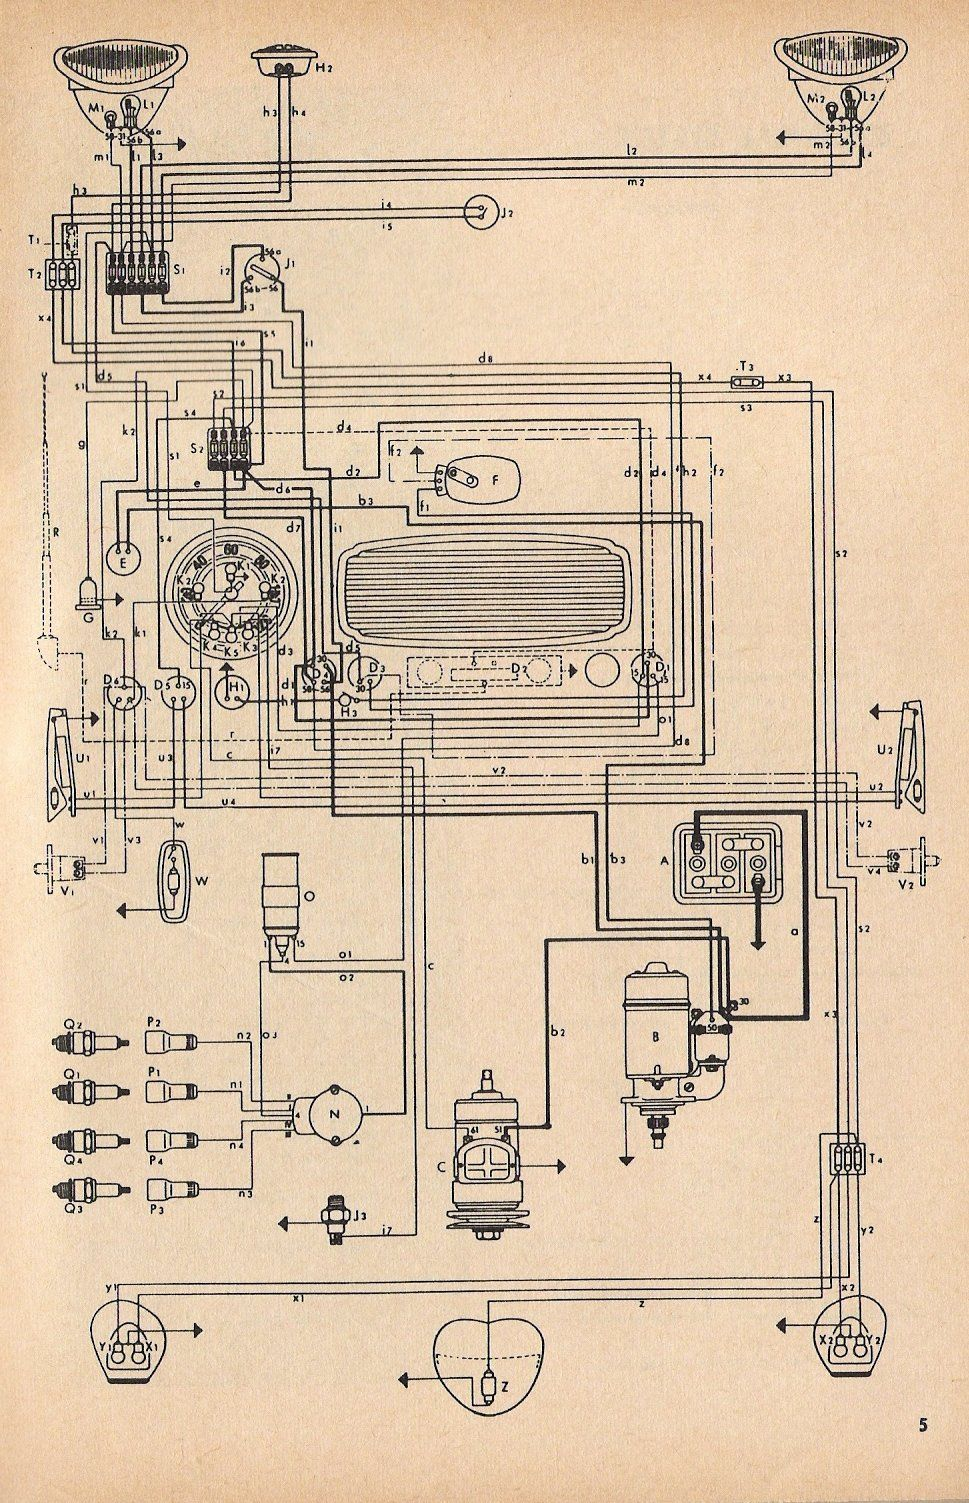 73aa9ad606b8bf00f62fd44f769ec35c electrical wiring diagrams beetle 1971 electrical wiring wiring diagram for 1972 vw beetle at sewacar.co